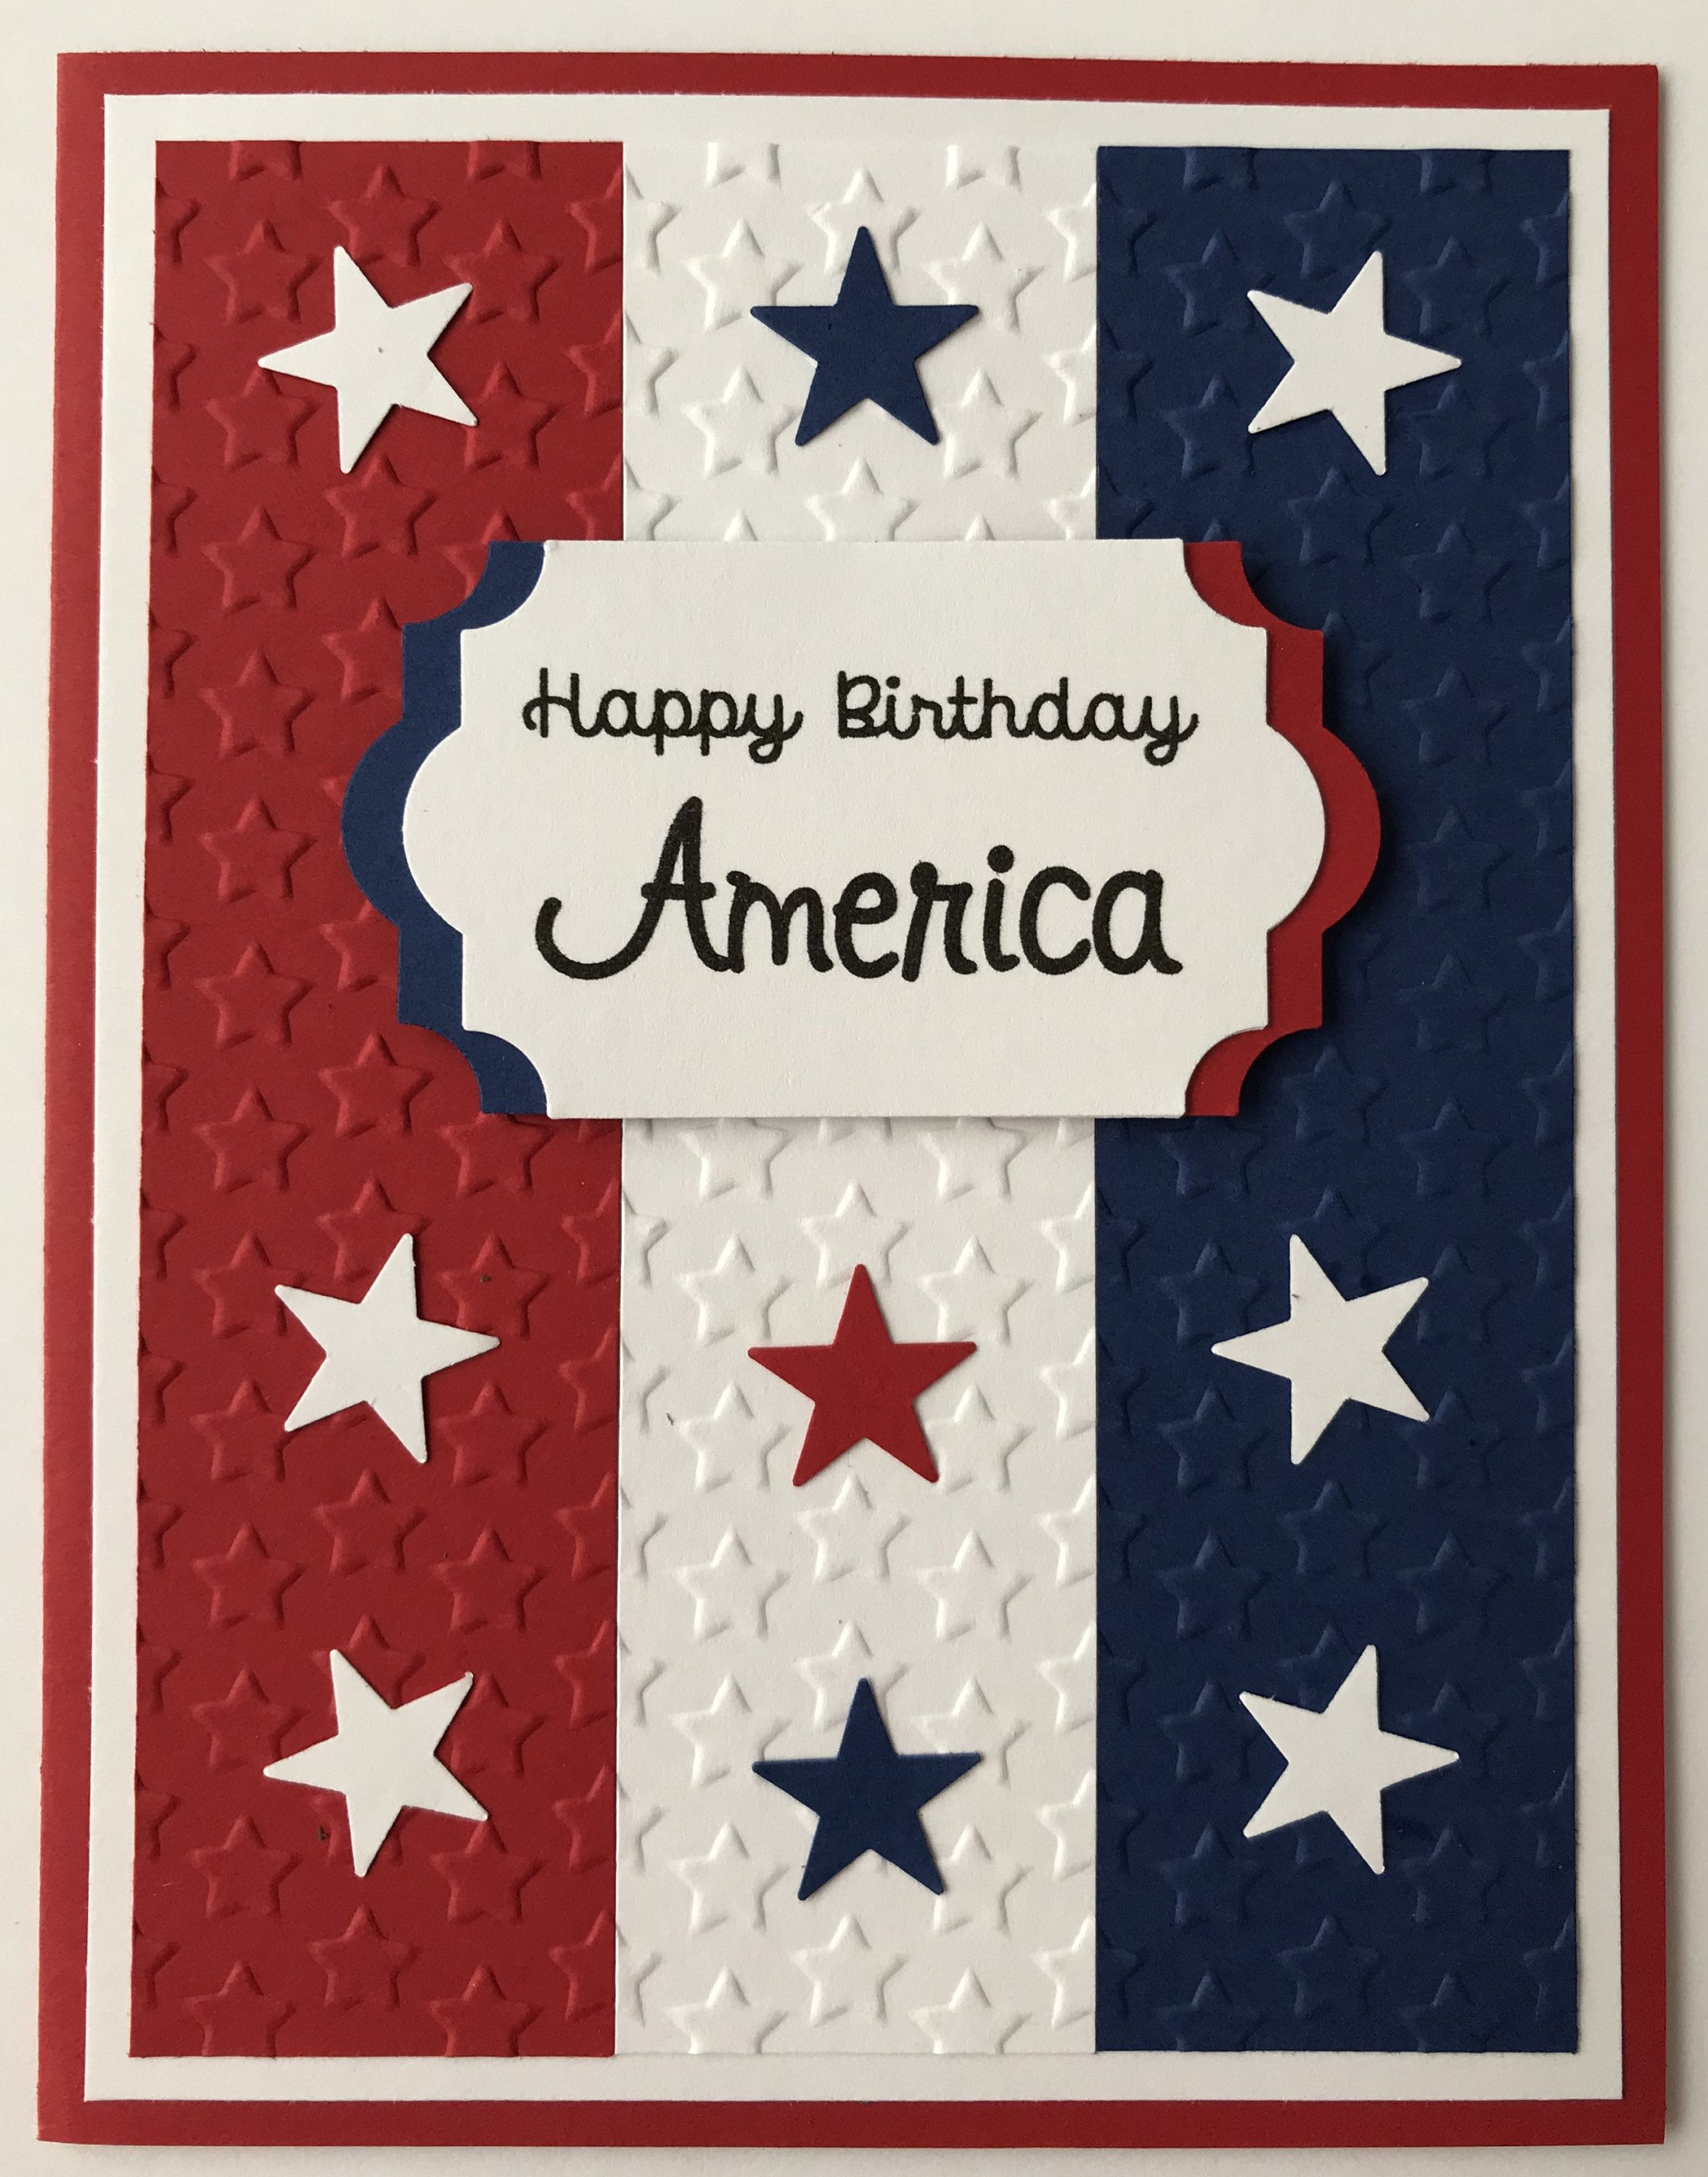 Handmade 4th Of July Card Happy Birthday America Let Freedom Ring A2 Red White Blue Patriotic Independence By Military Cards Cards Happy Birthday America